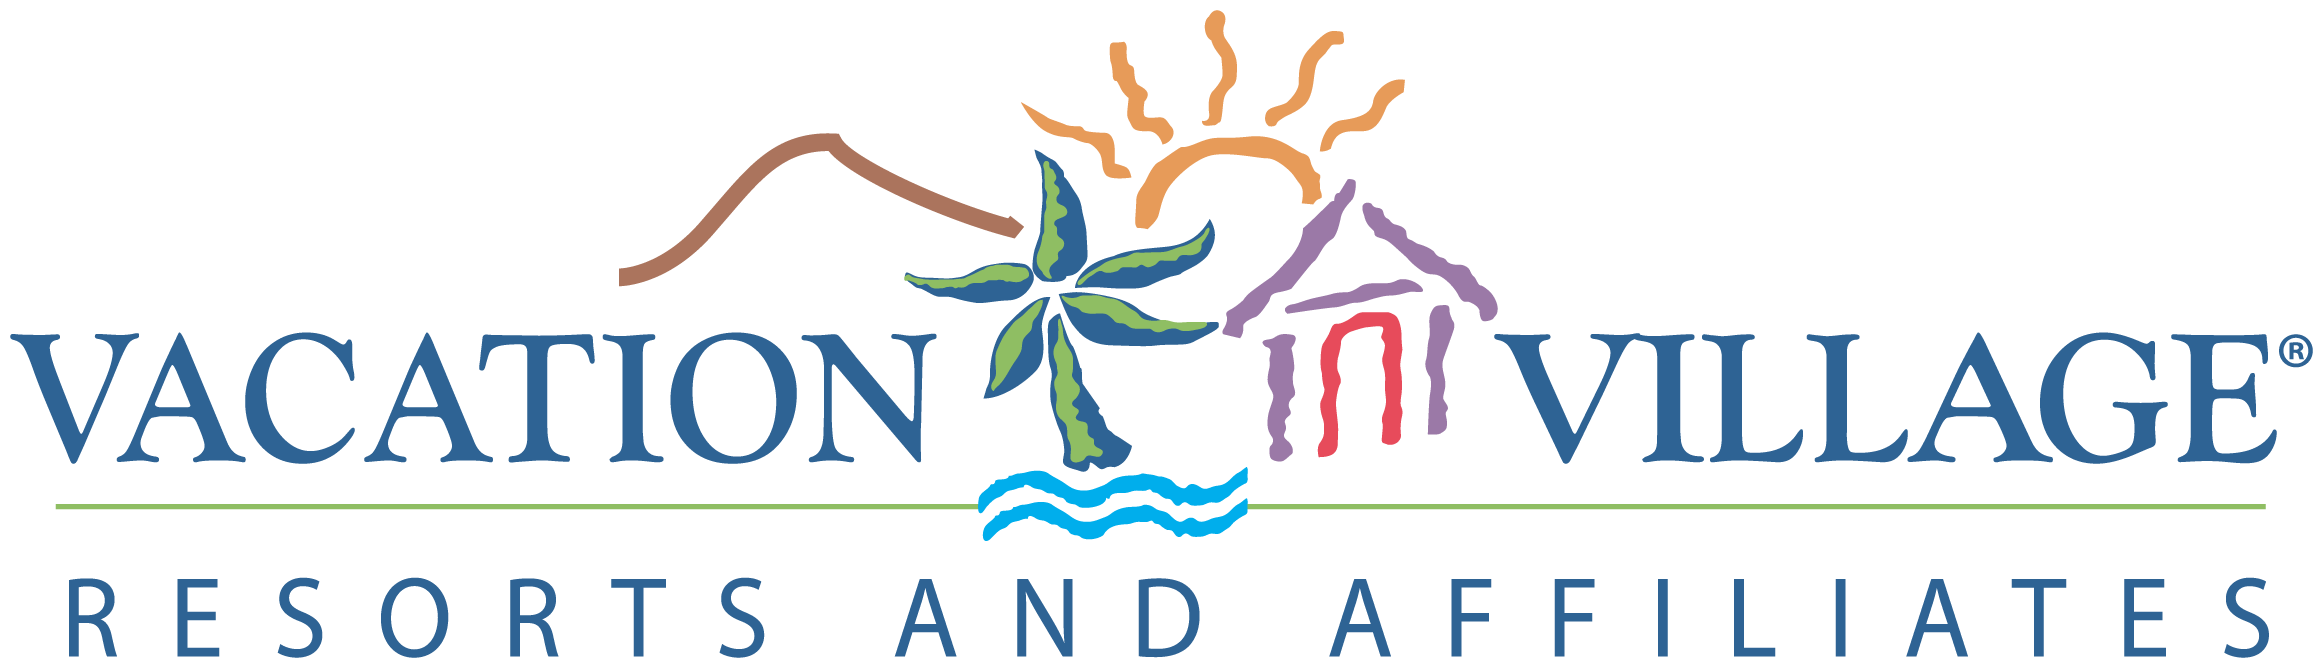 Vacation Village Resorts And Affiliates